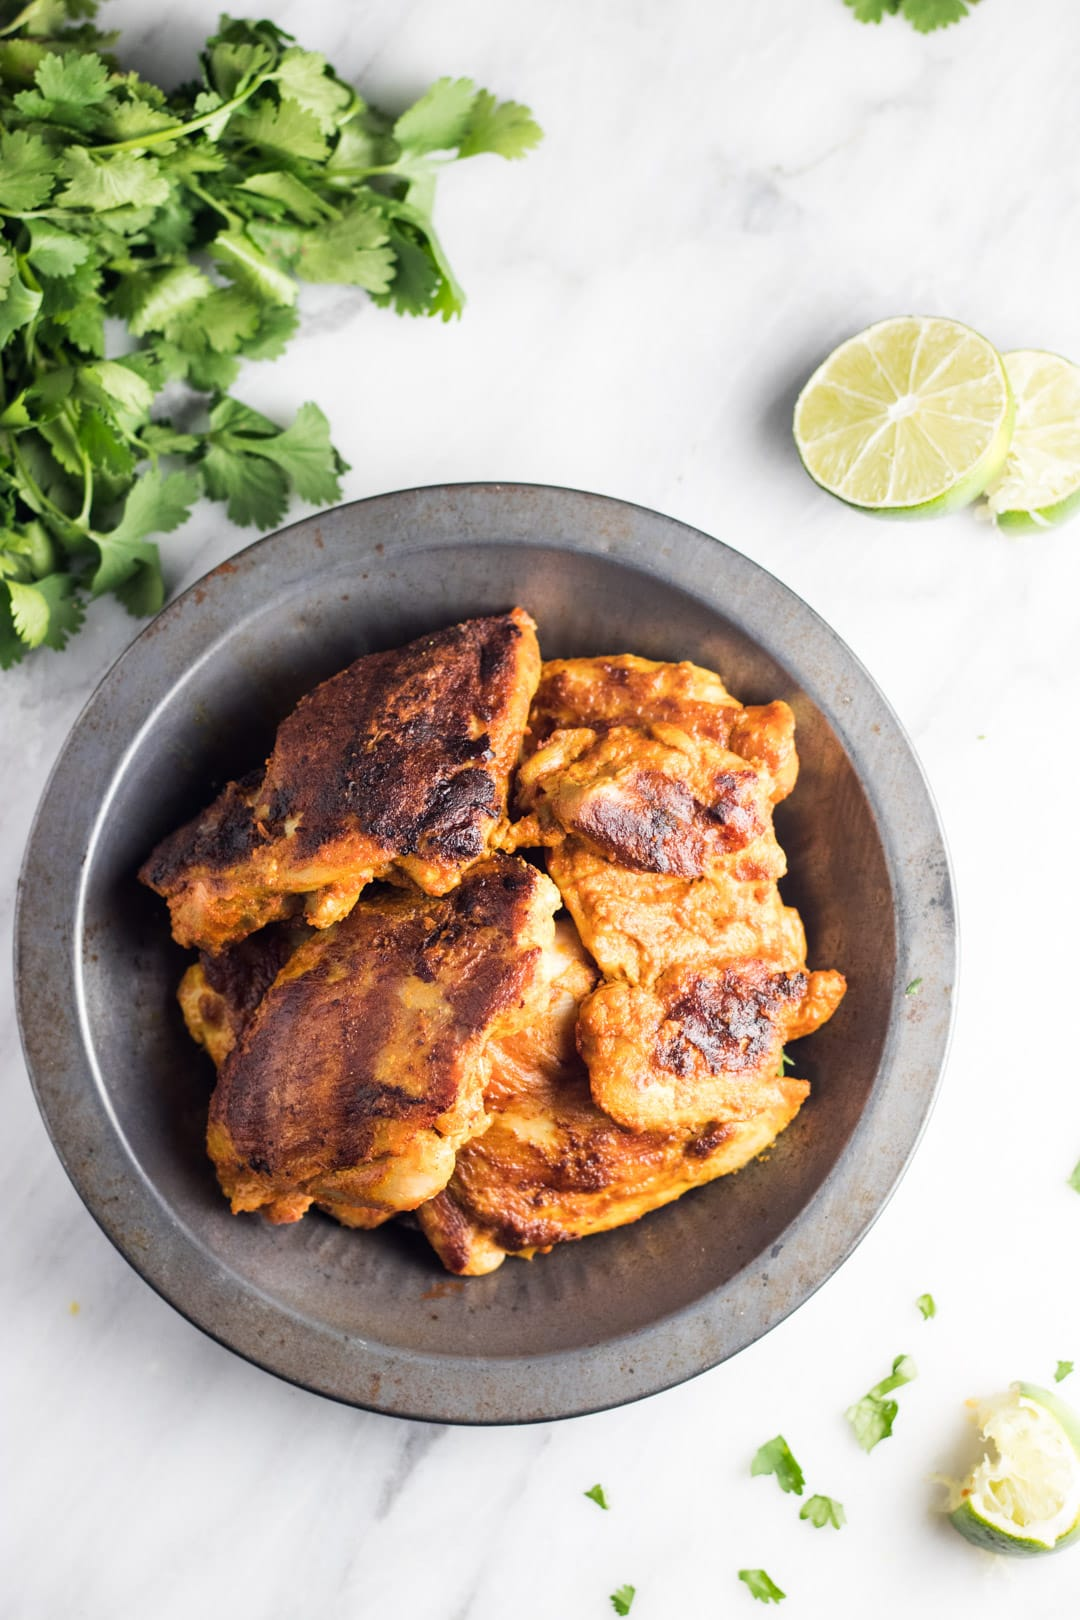 Grilled low FODMAP tandoori-inspired chicken in a metal bowl sitting on a white marble background. Cilantro leaves and lime slices surround the bowl.